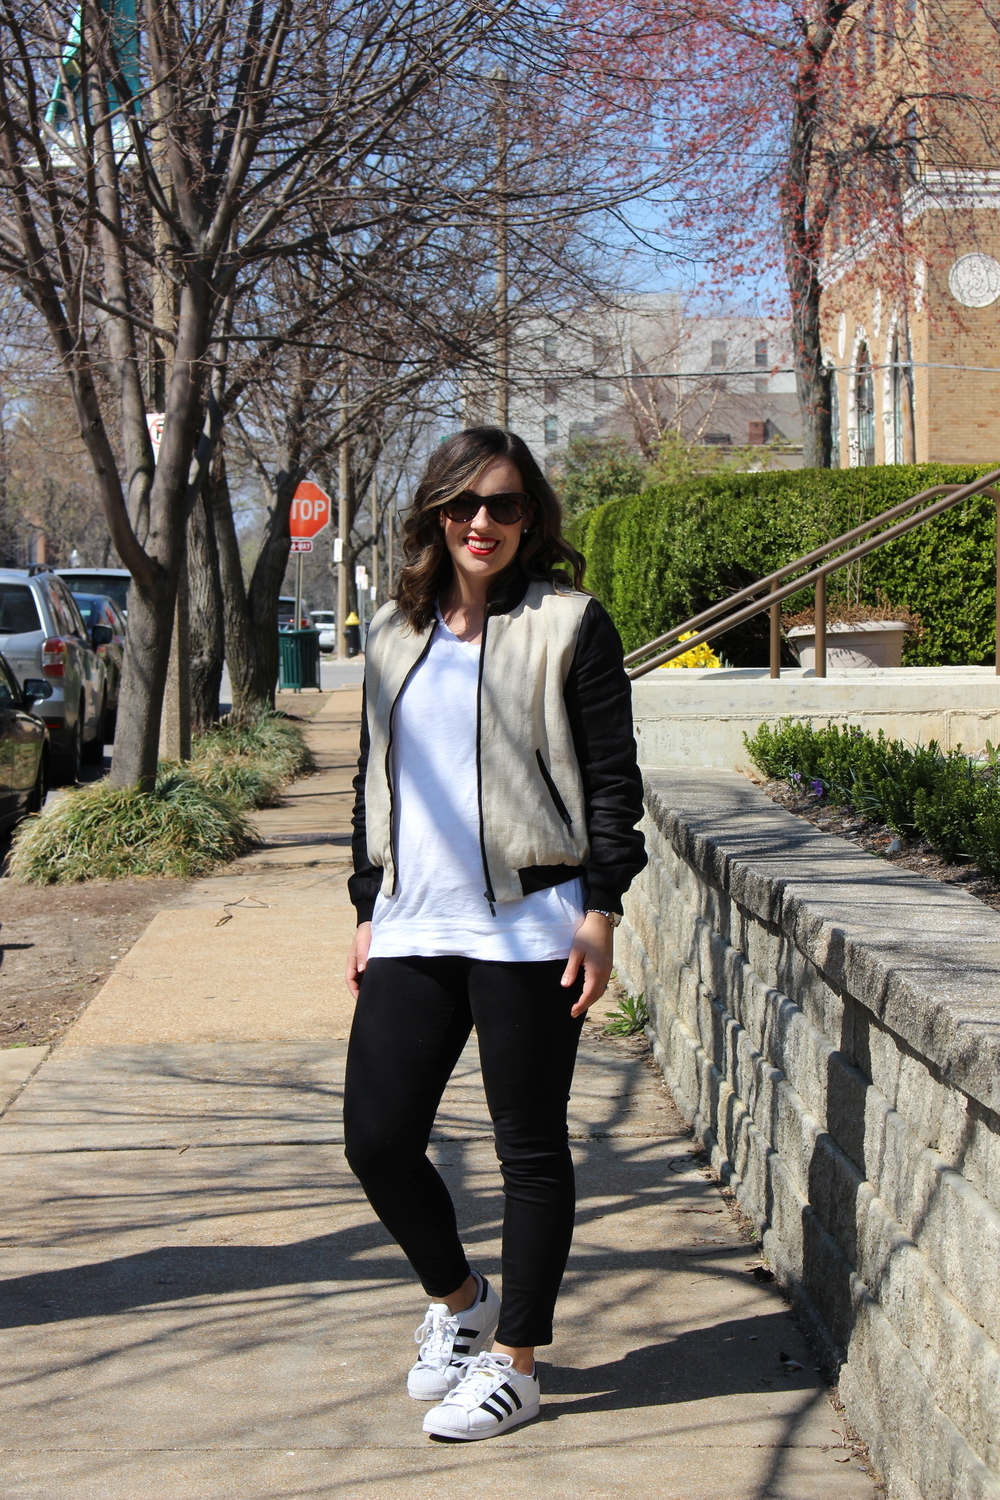 super stars, bomber jacket, how to dress up a white tshirt, how to shop at marshalls, j.crew factory, gap, adidas, spring bomber jacket, the perfect bomber jacket for an everyday look, neutral tone outfits, how to wear sneakers and jeans, the perfect red lip,